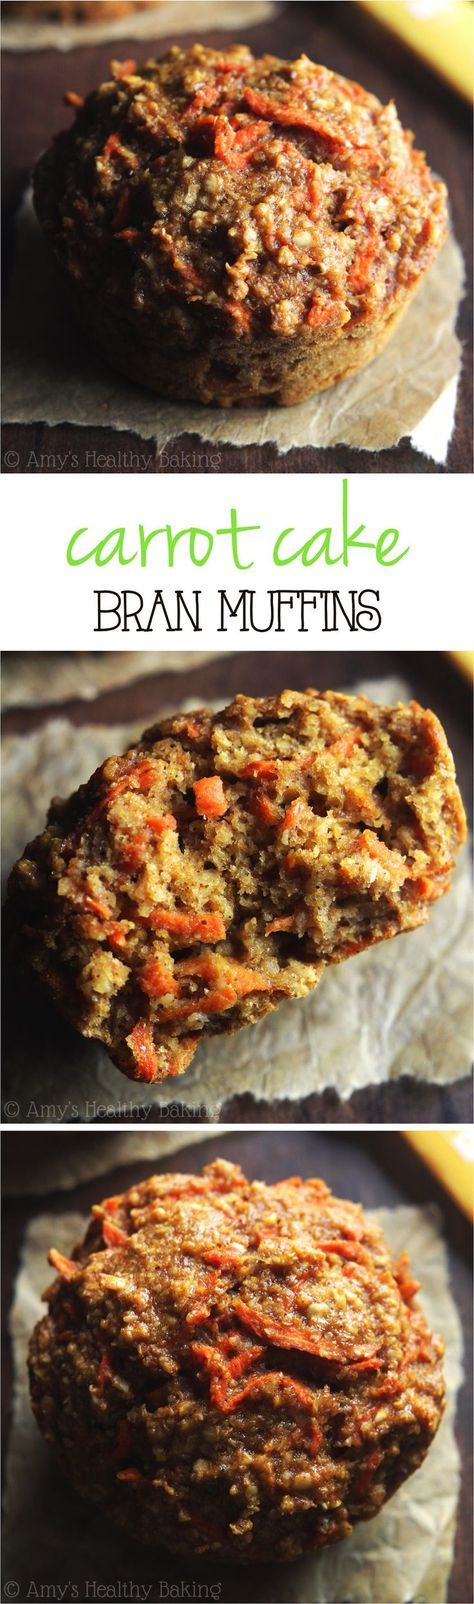 629cedbf60bfdd02e1187d132fc7df90  bran muffins trick Clean Eating Carrot Cake Bran Muffins    one simple trick makes these the moiste...